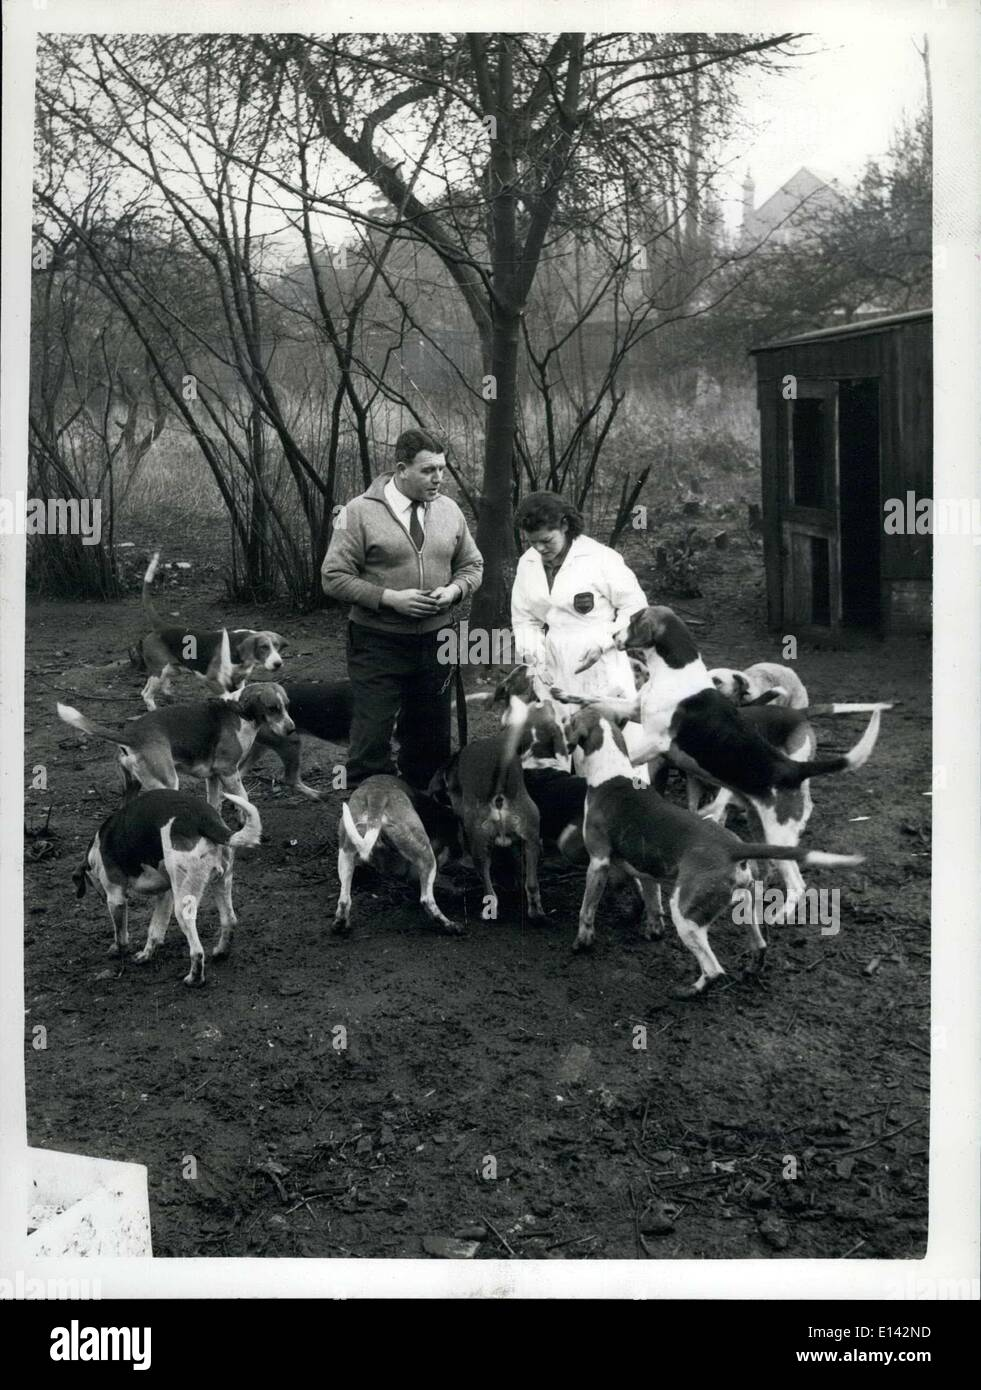 Mar. 31, 2012 - Frank Petter with Miss Virginia Brown with some of the now-tamed hounds of the Burto Pack at the N.C.D.L. establishment at Hampton, Middx. - Stock Image